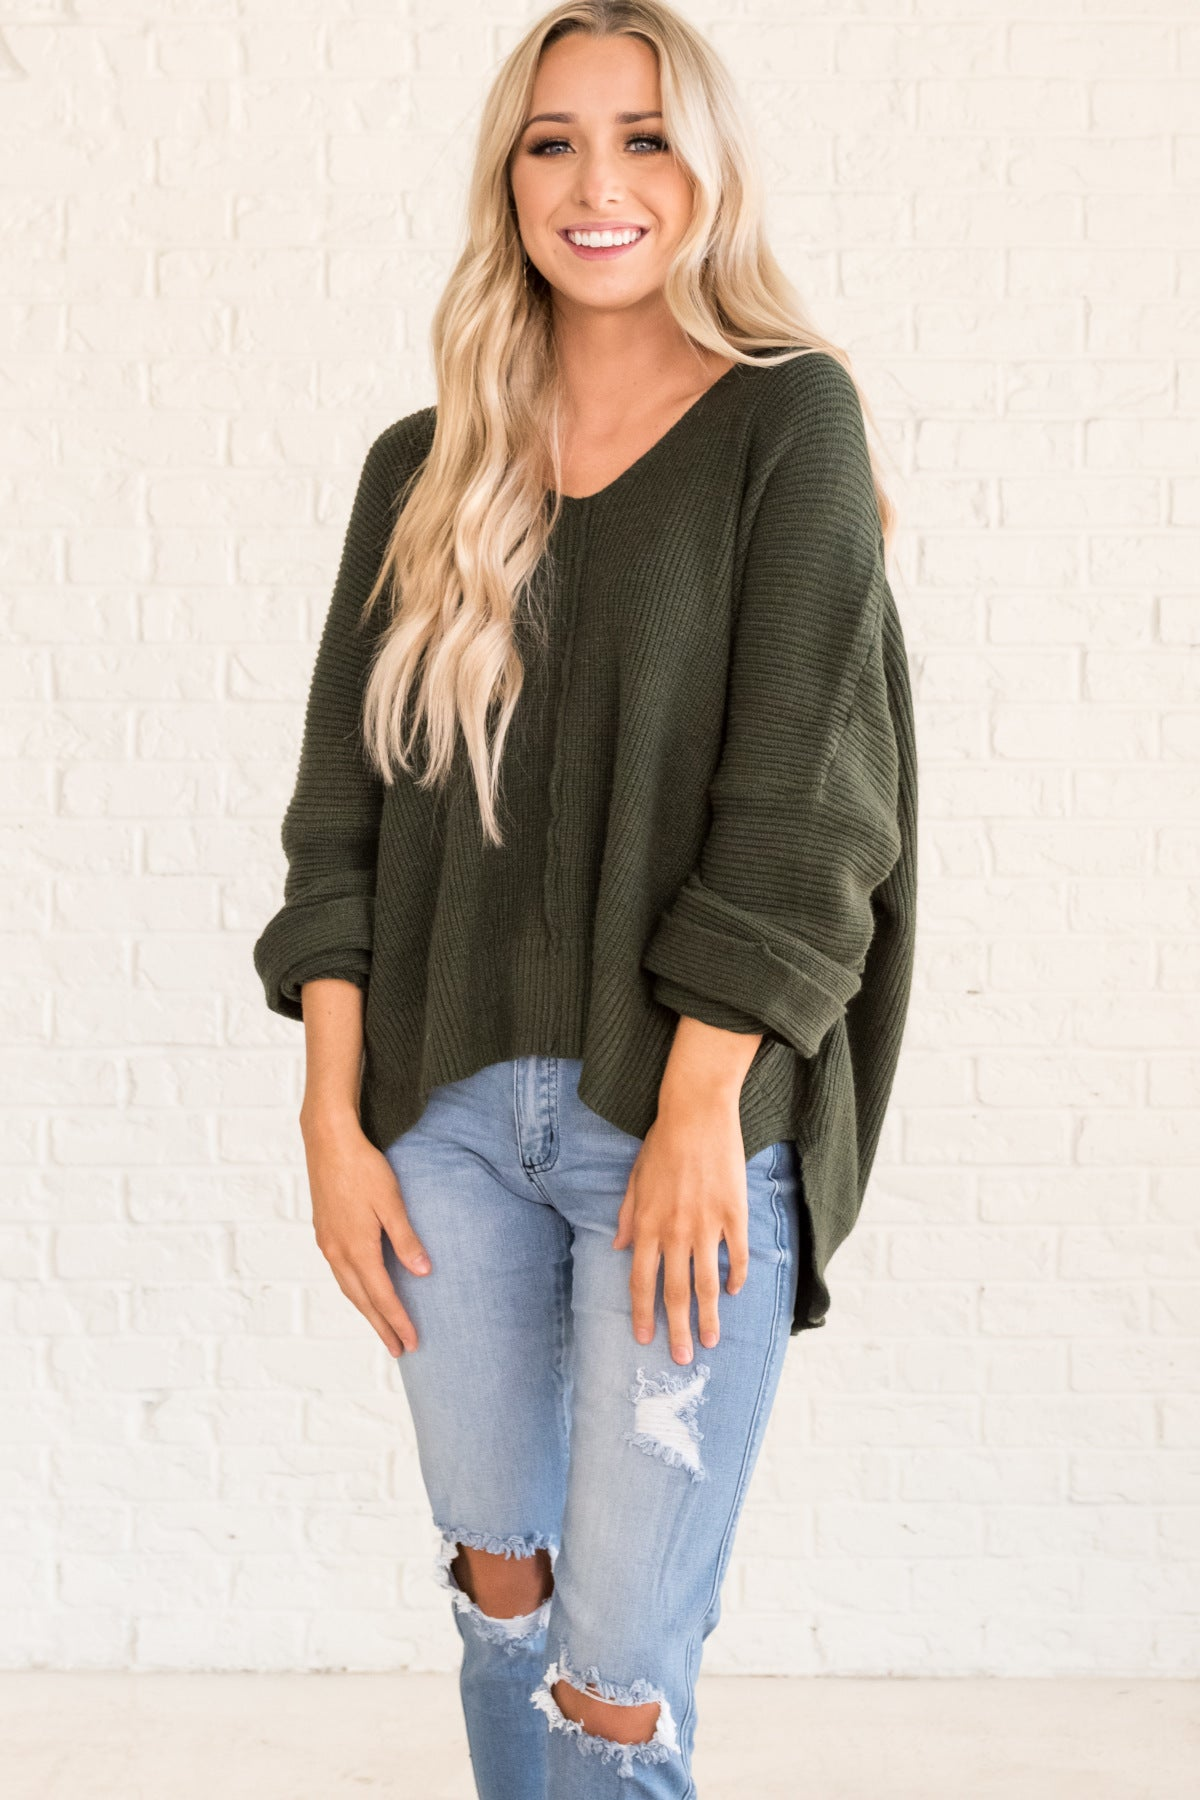 Forest Green Knit Pullover Oversized Boyfriend Sweaters Cozy Warm